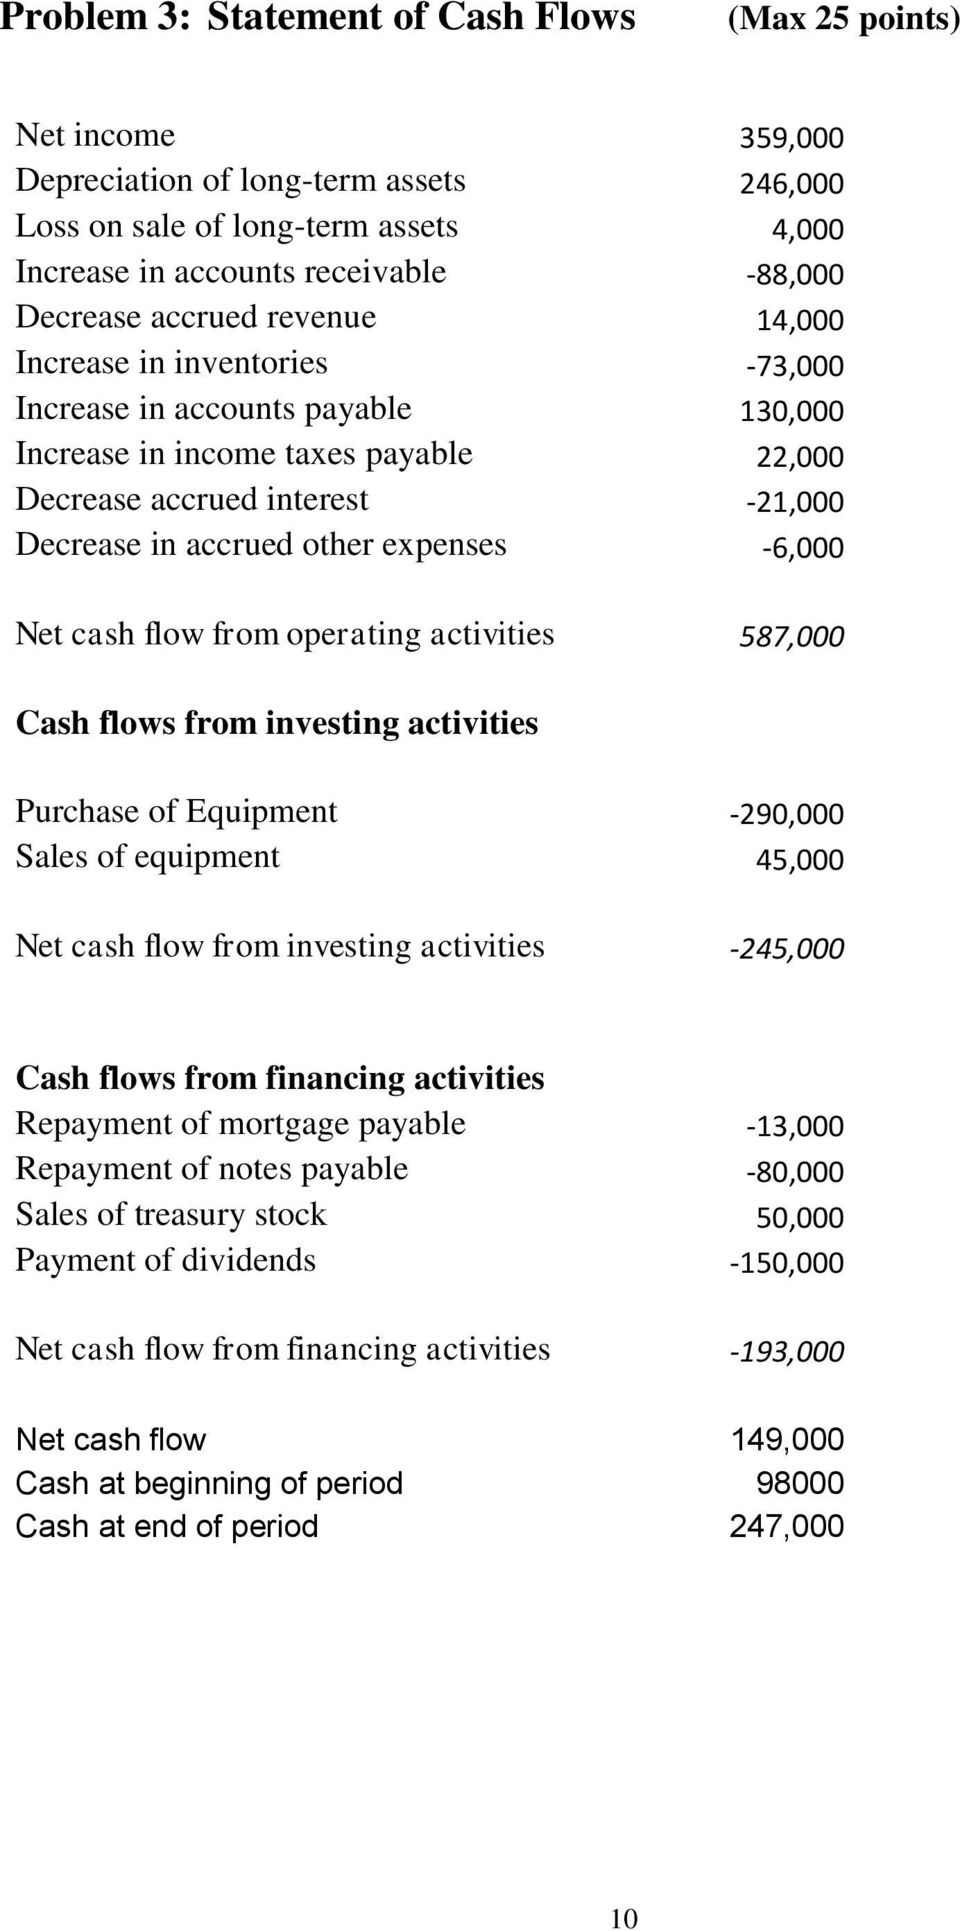 expenses -6,000 Net cash flow from operating activities 587,000 Cash flows from investing activities Purchase of Equipment -290,000 Sales of equipment 45,000 Net cash flow from investing activities